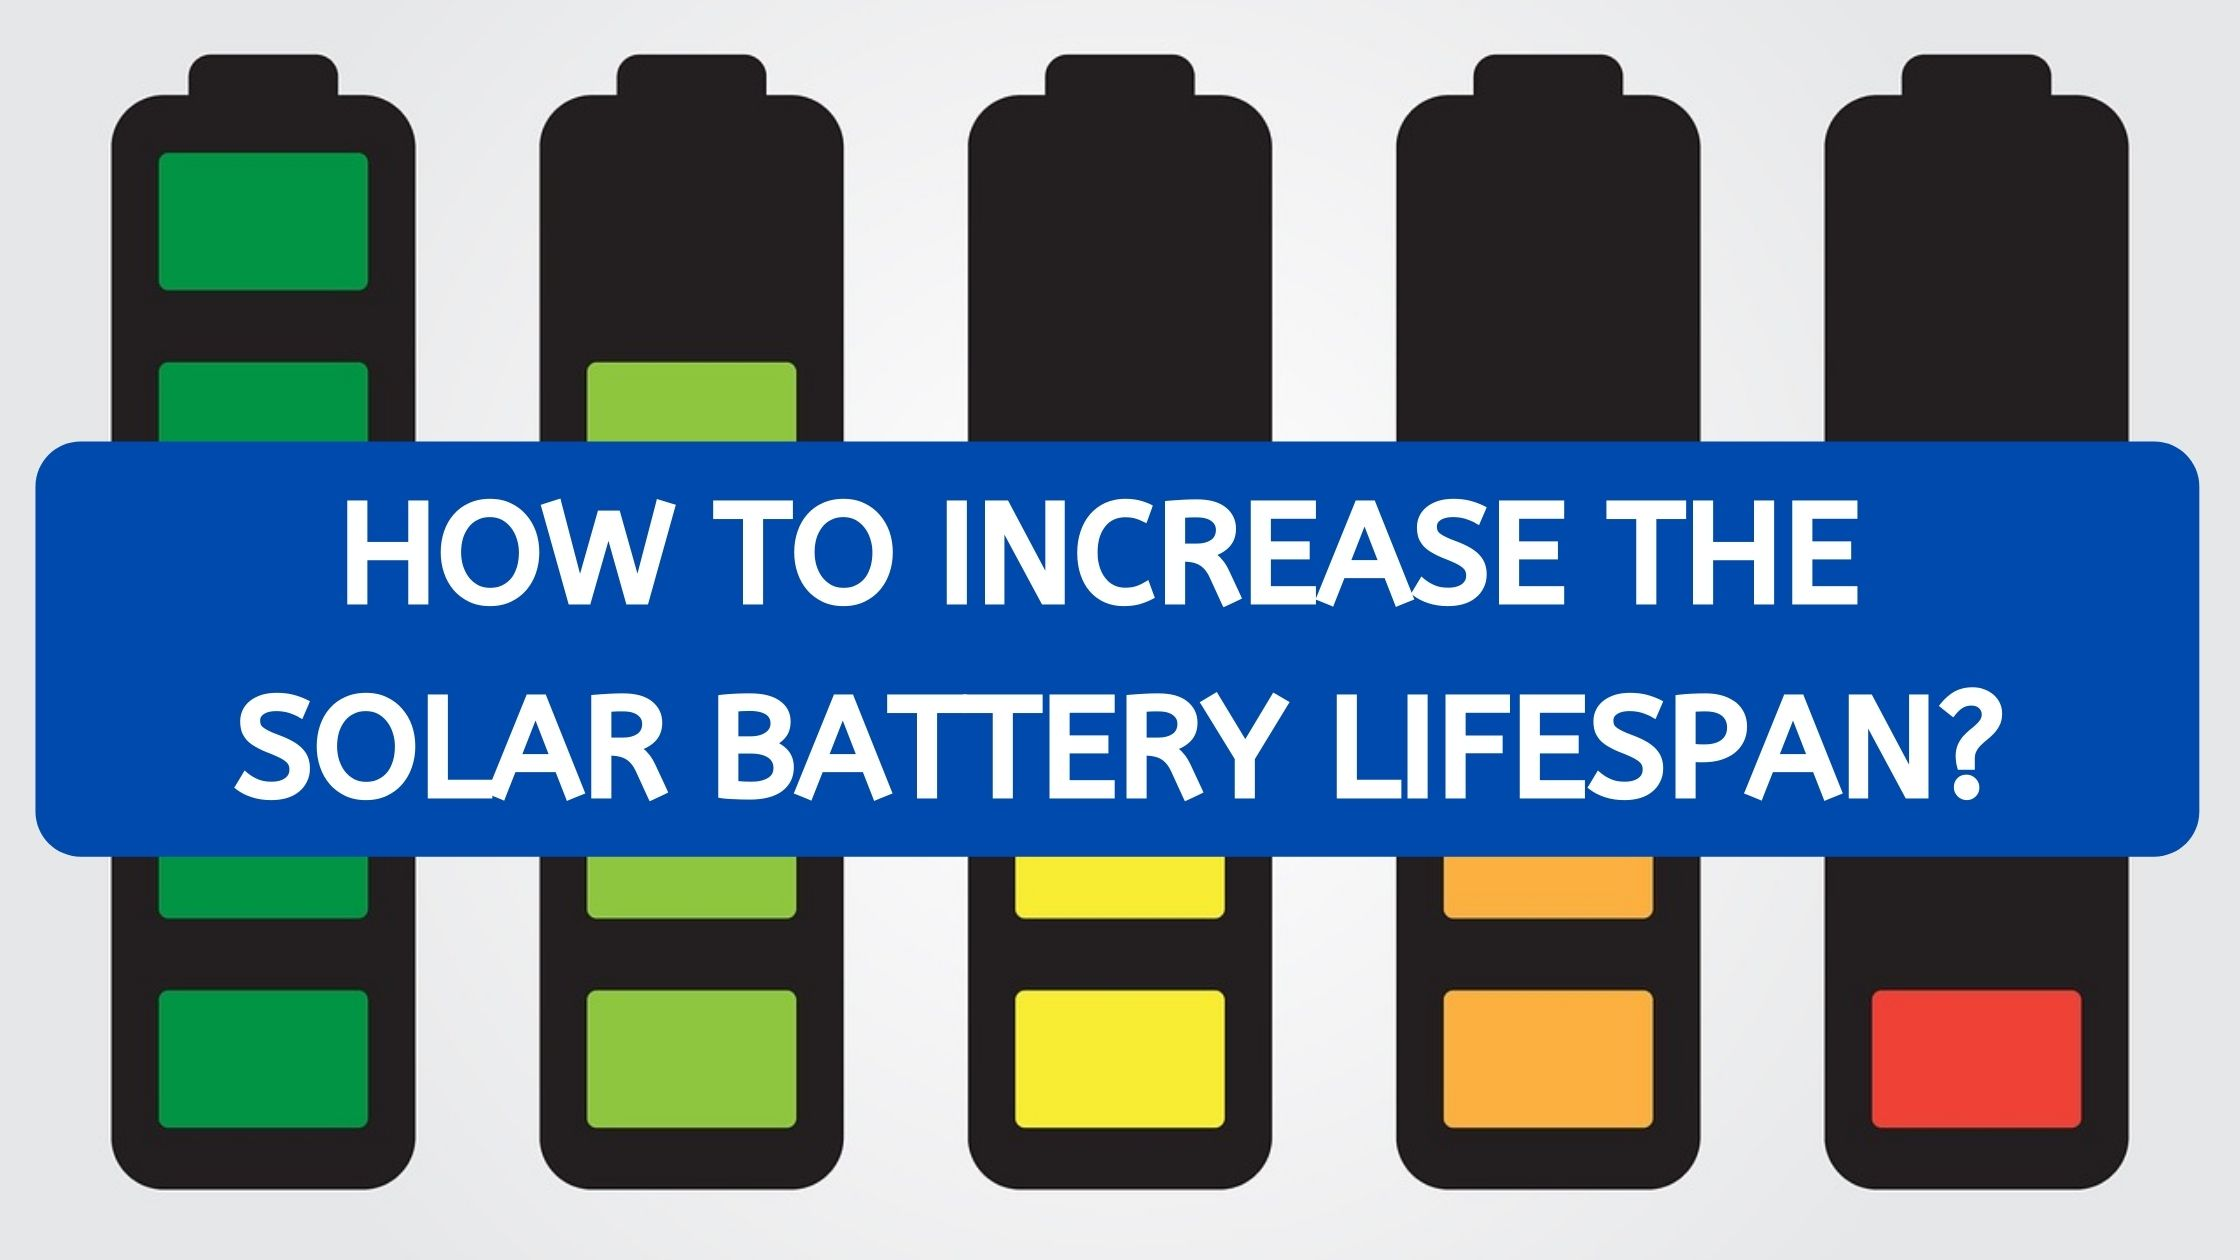 How to Increase the Solar Battery Lifespan